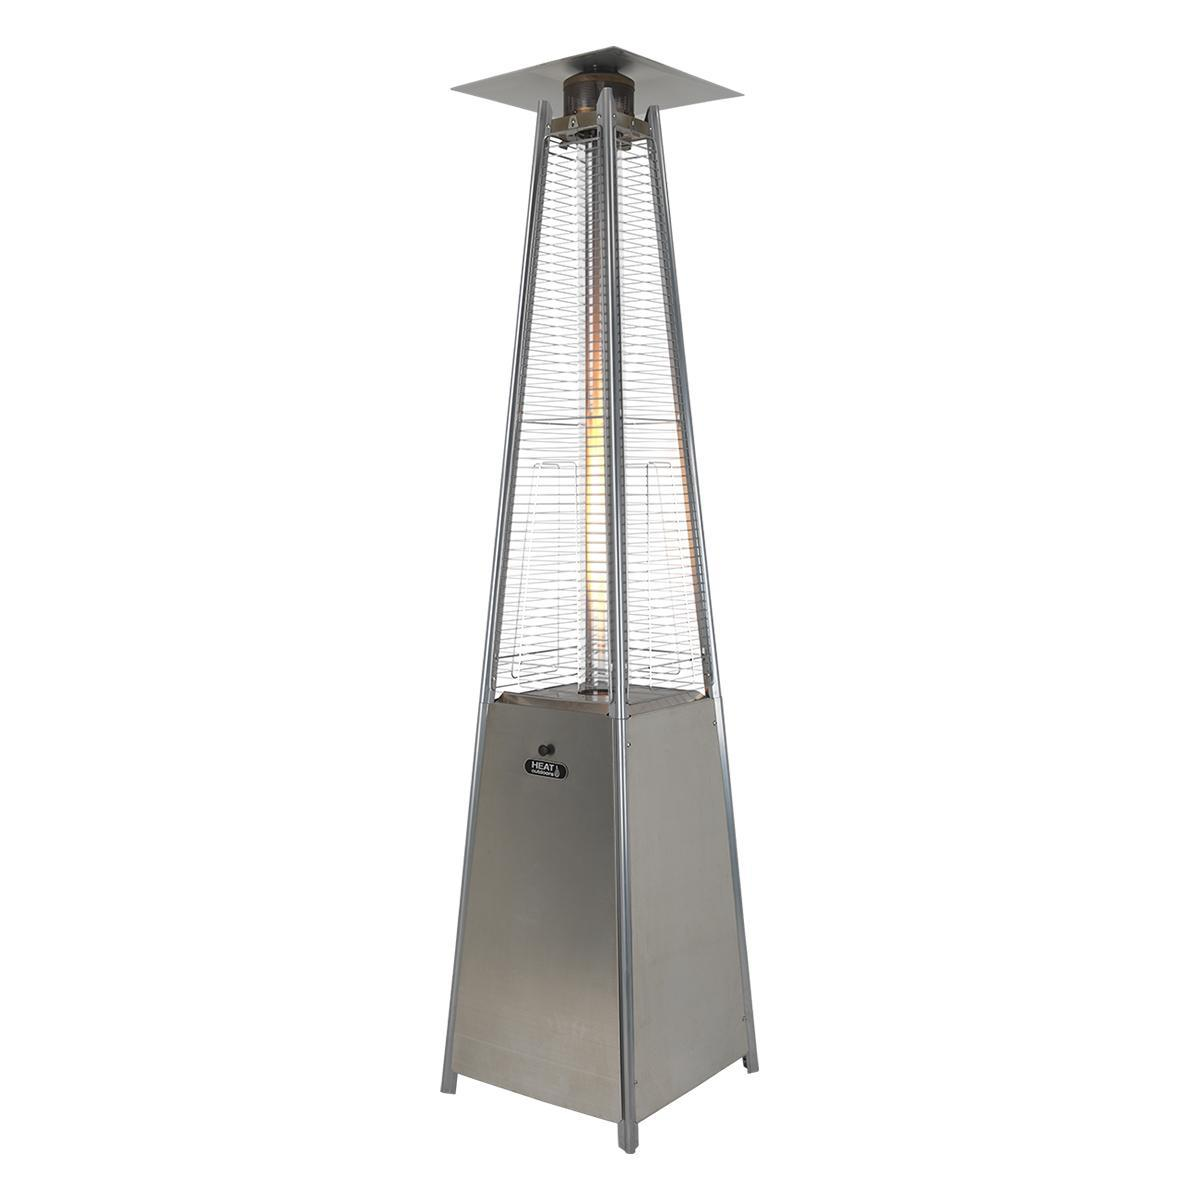 The original Athena Plus+ Commercial Grade Stainless Steel Patio Heater